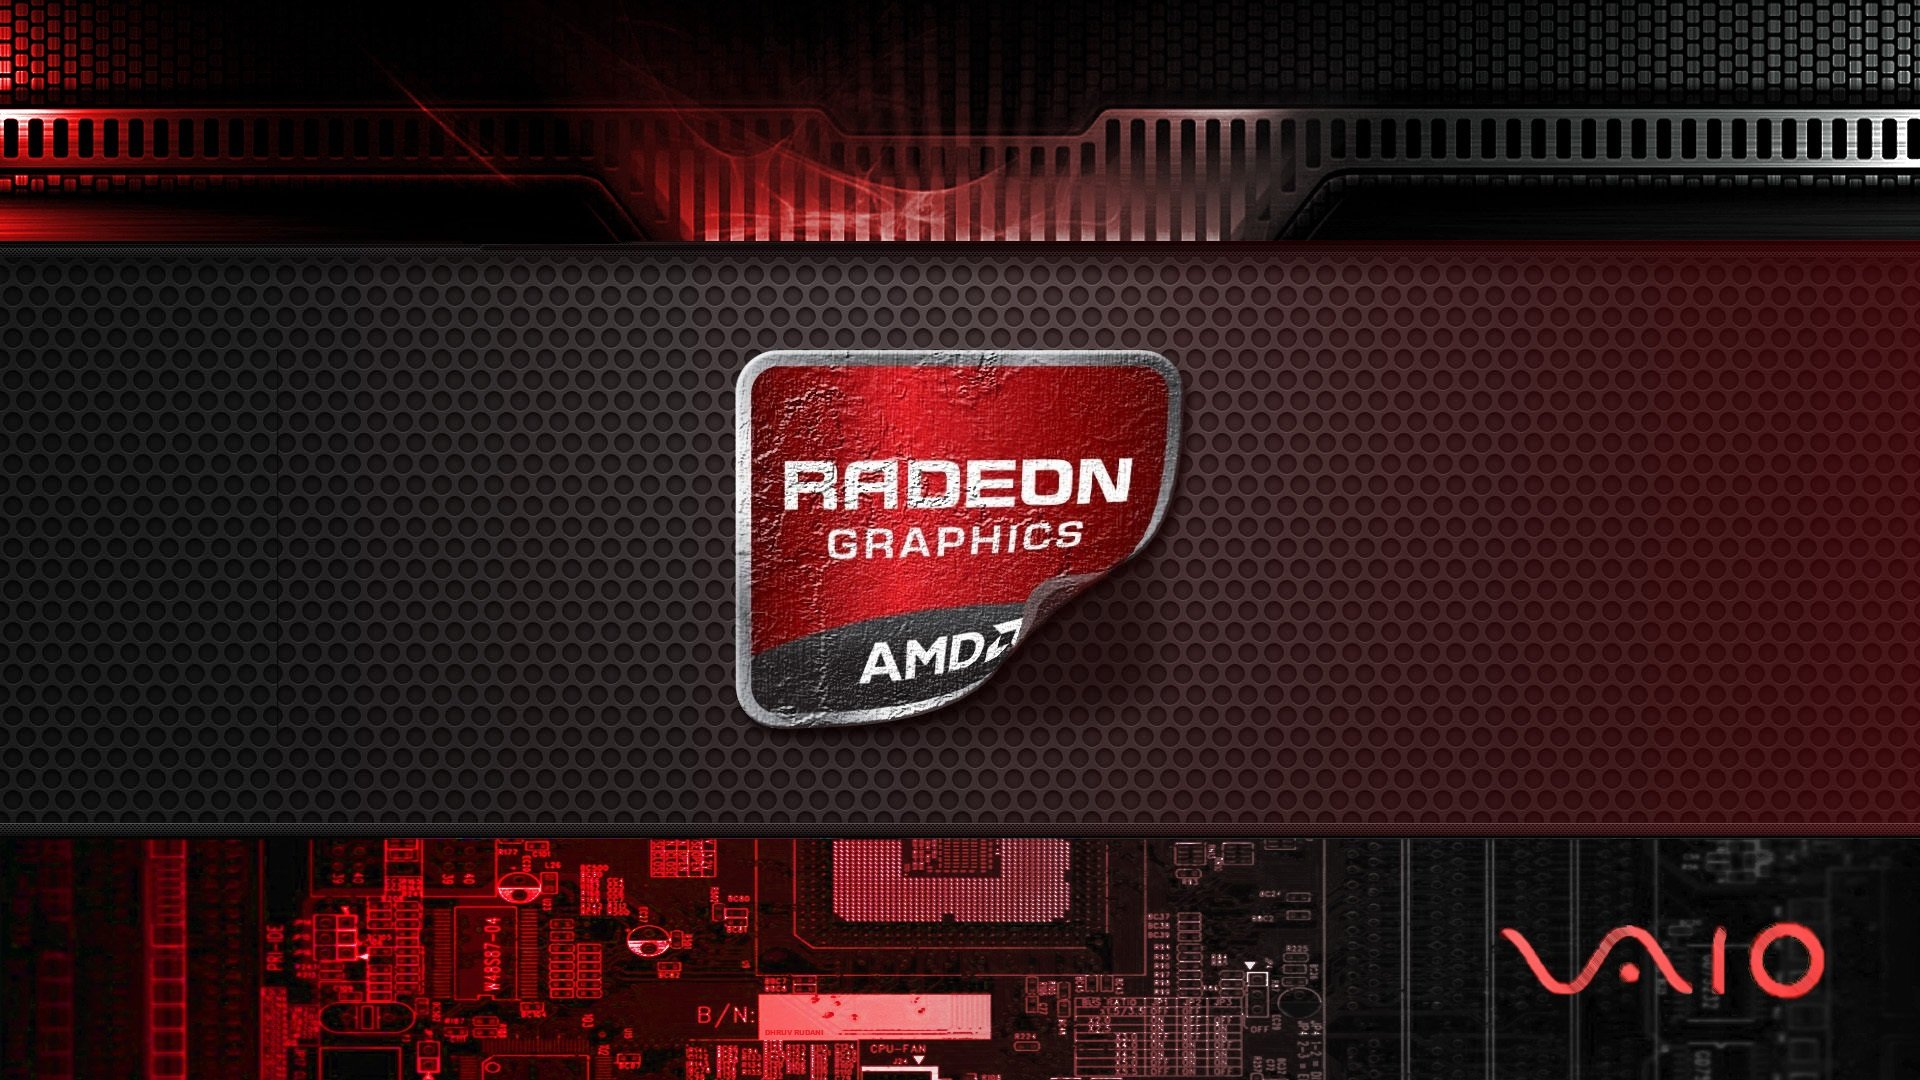 amd wallpapers 1920x1080 full hd (1080p) desktop backgrounds